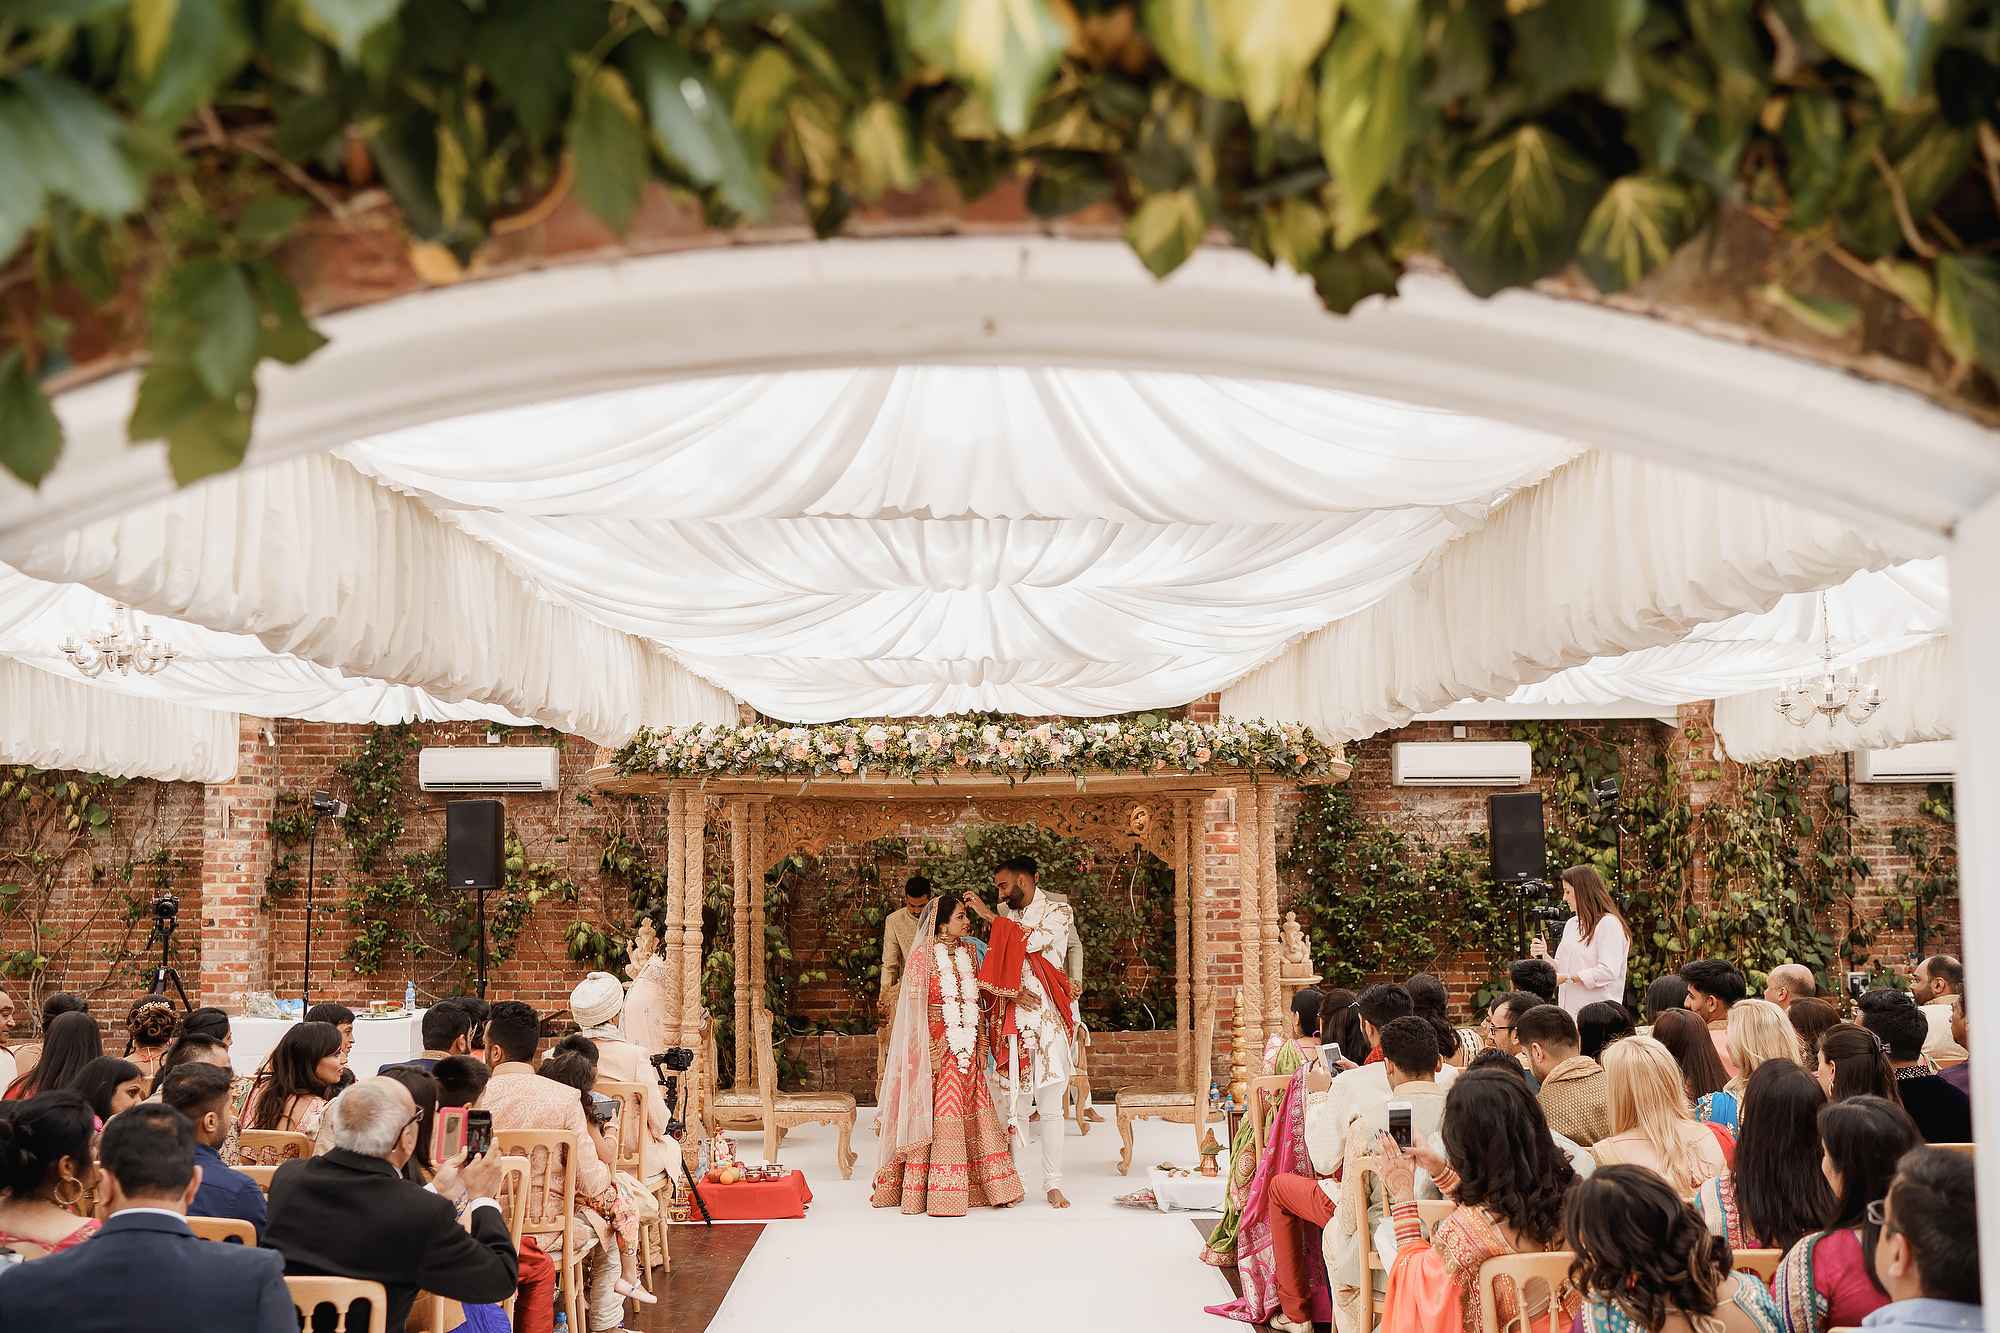 Northbrook Park Wedding Surrey of Kishan and Sachna by ARJ Photography